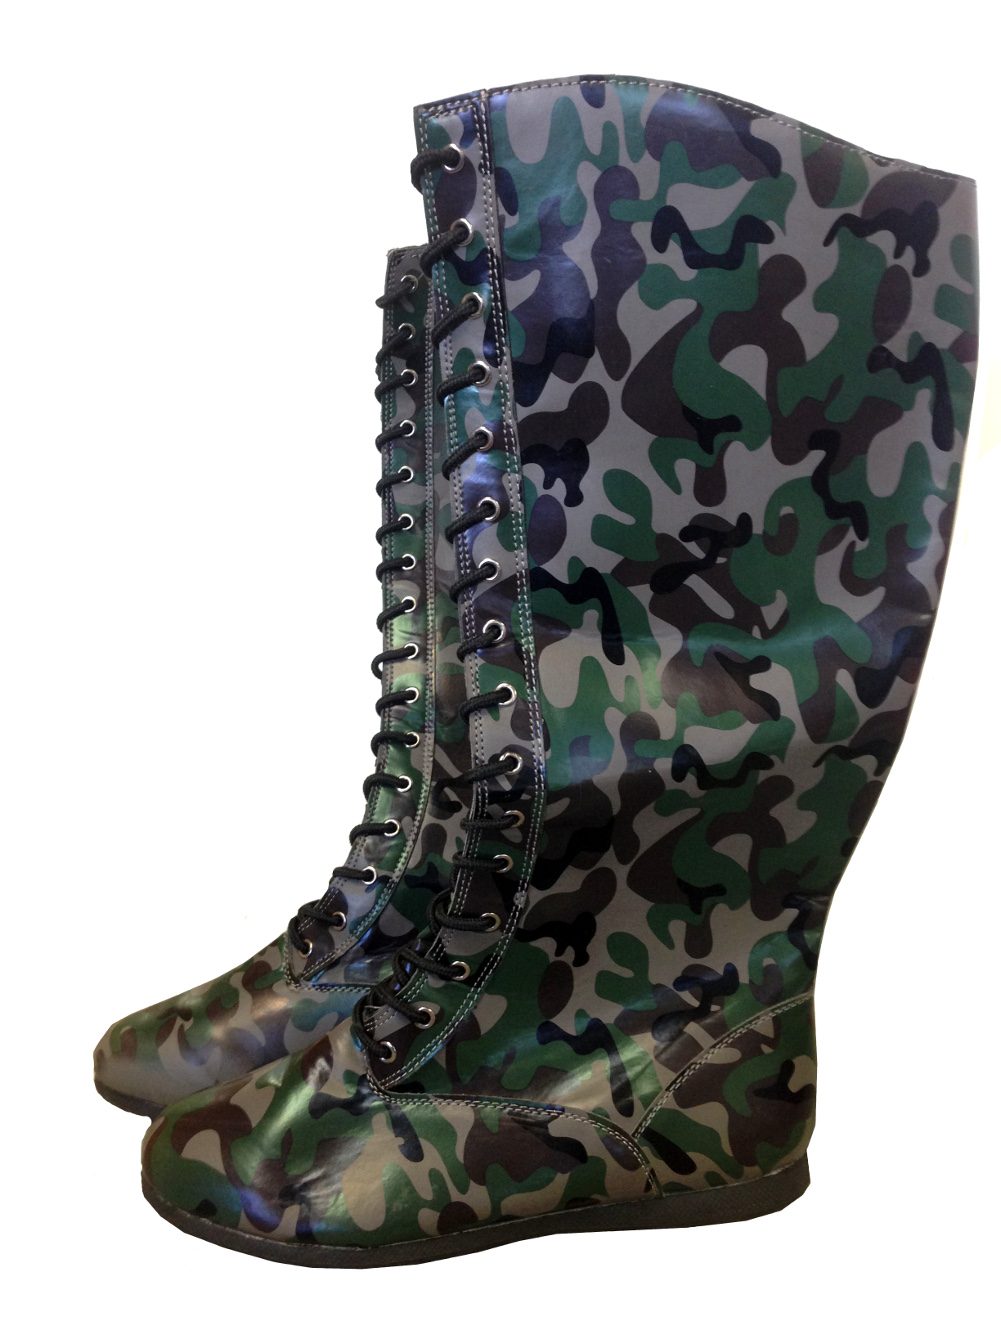 Camo Adult Pro Wrestling Boots WWF WWE Camouflage Costume Military Hero Boxing by MyPartyShirt